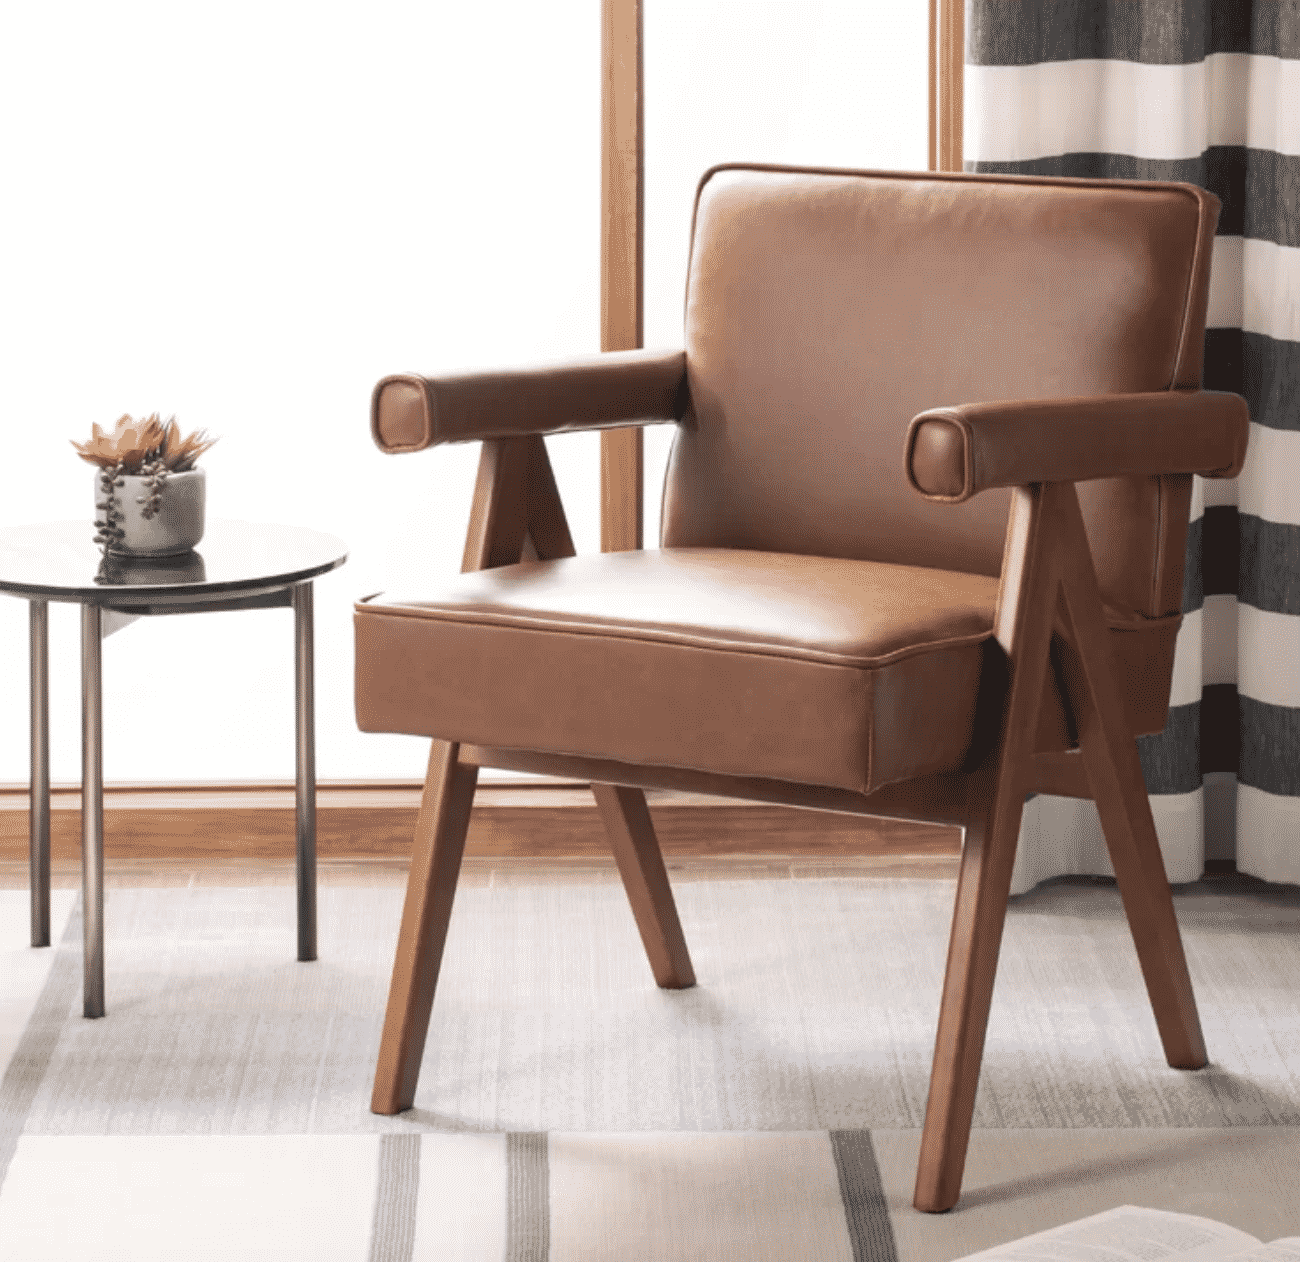 cool-chairs-leather